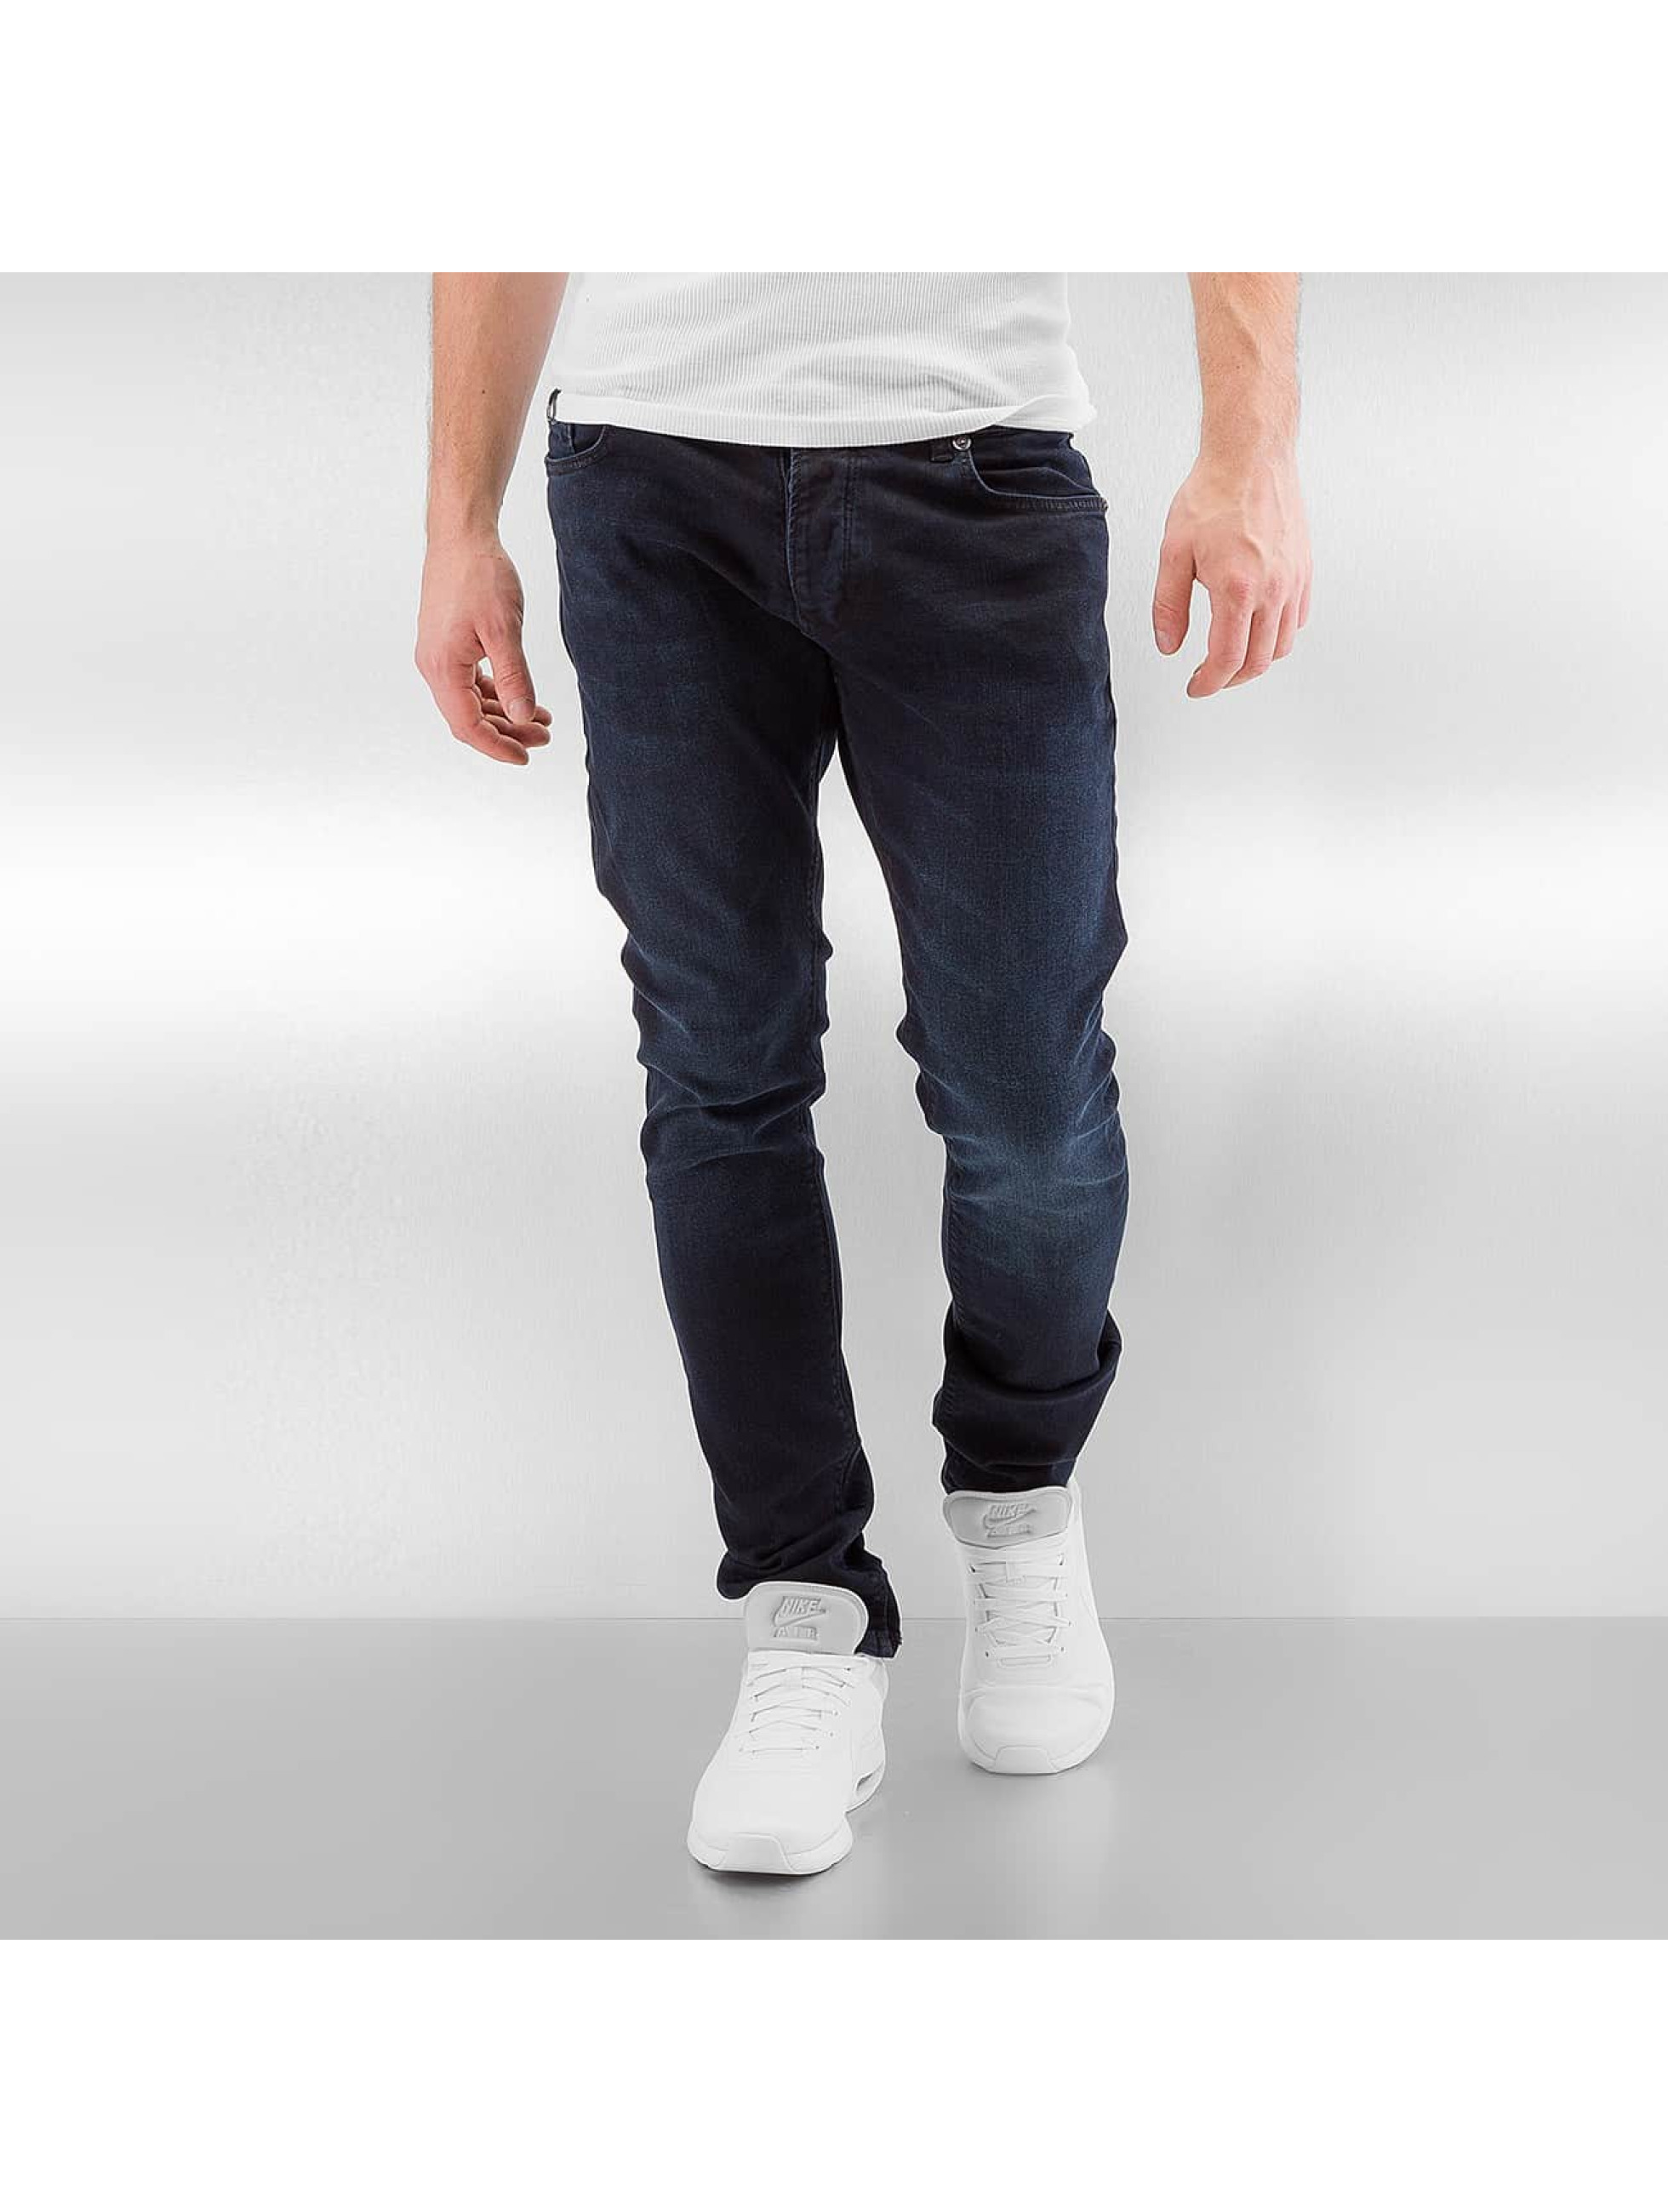 Straight Fit Jeans Indra in blau